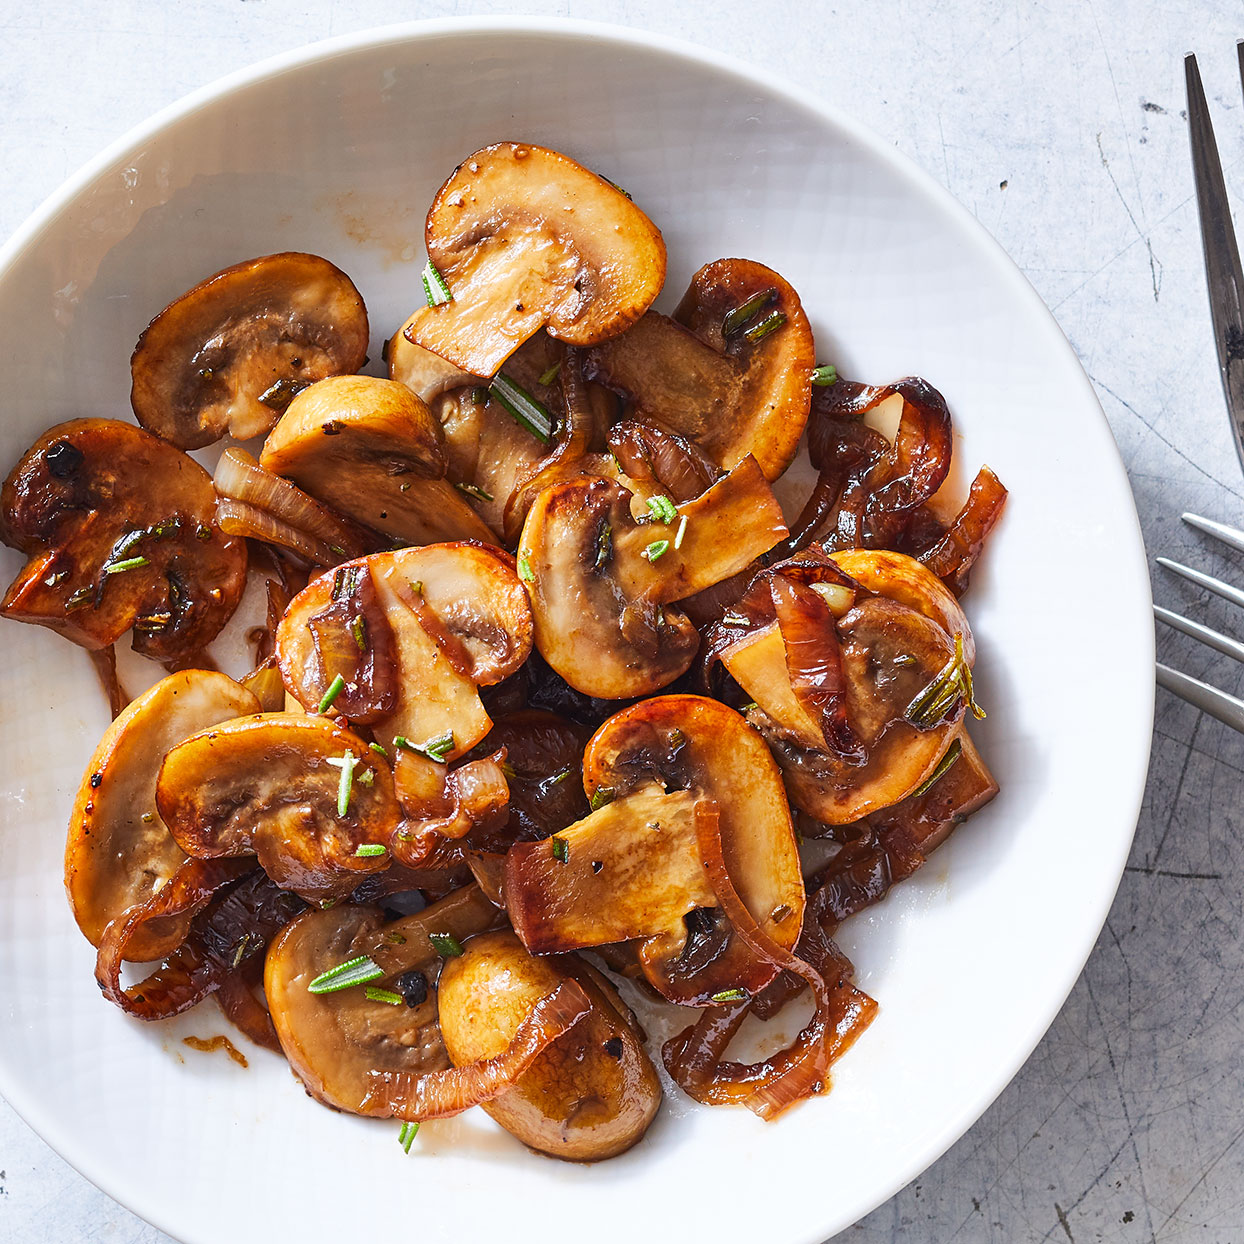 Sautéed Mushrooms with Sherry & Shallots Trusted Brands